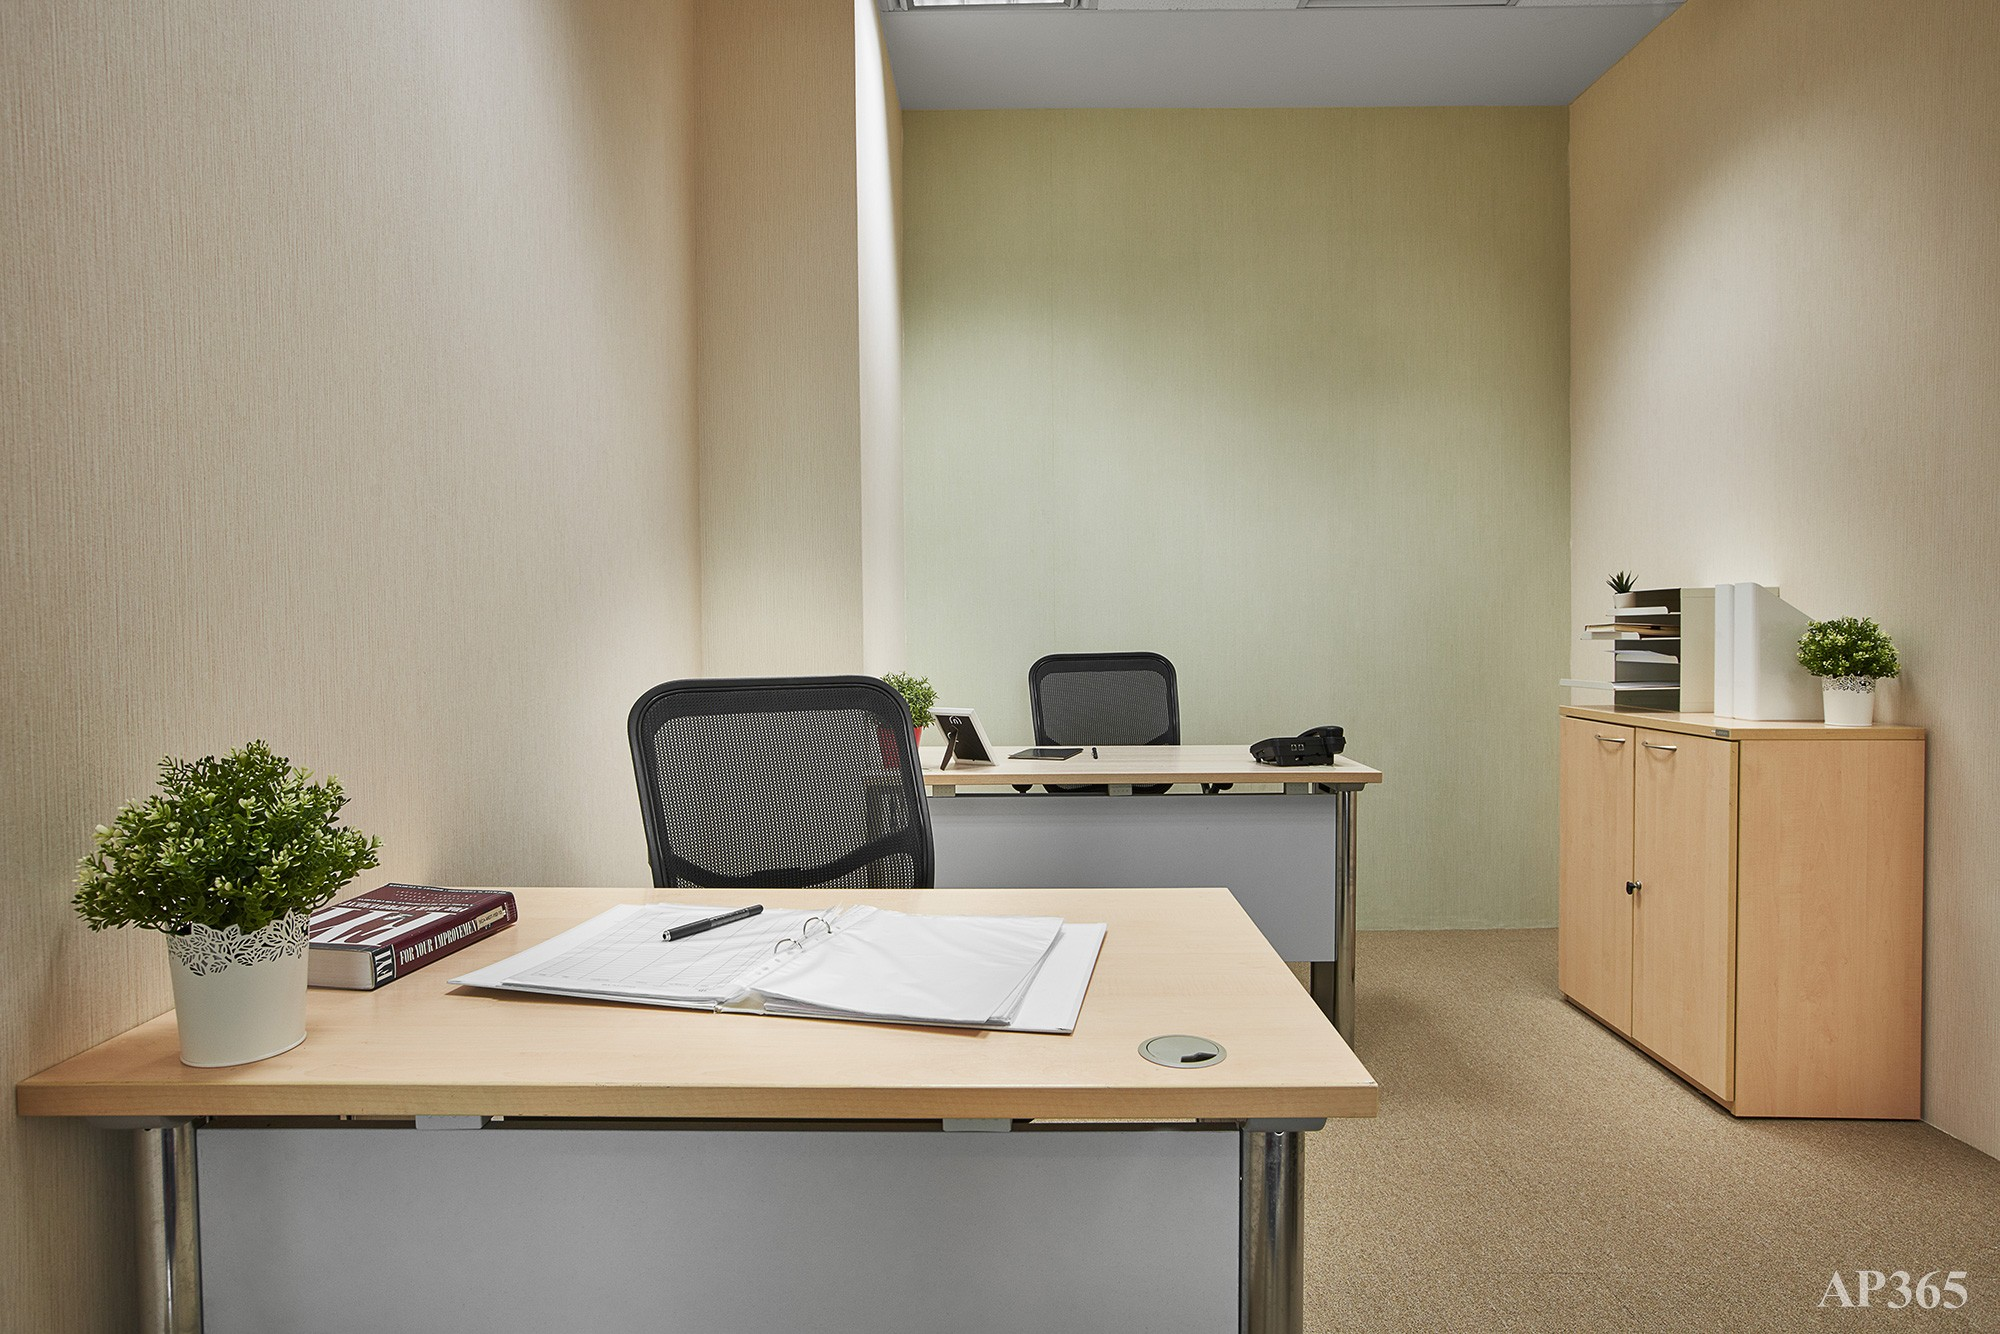 Linuxx Serviced Office - Asia Centre Building 17th Fl. (Room 103) - 3